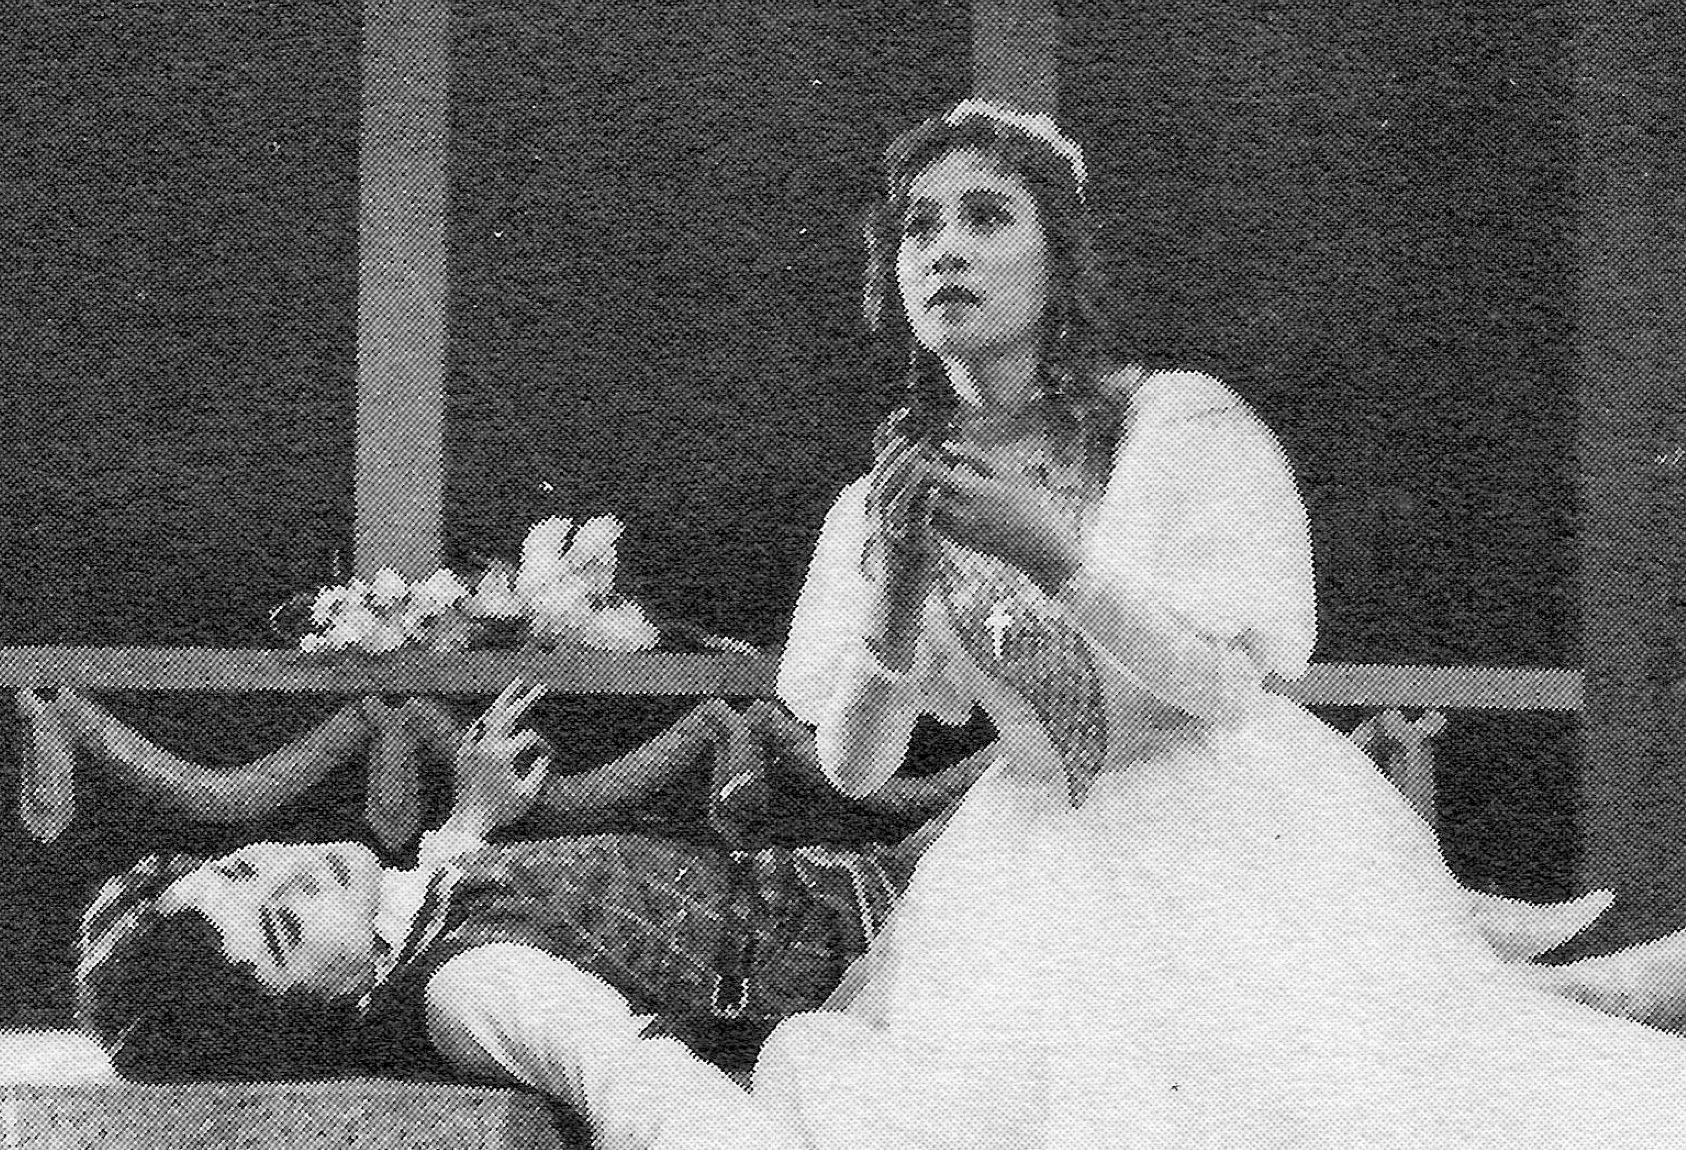 Scene from a production of Romeo and Juliet by the Shanghai People's Art Theatre, December 1980